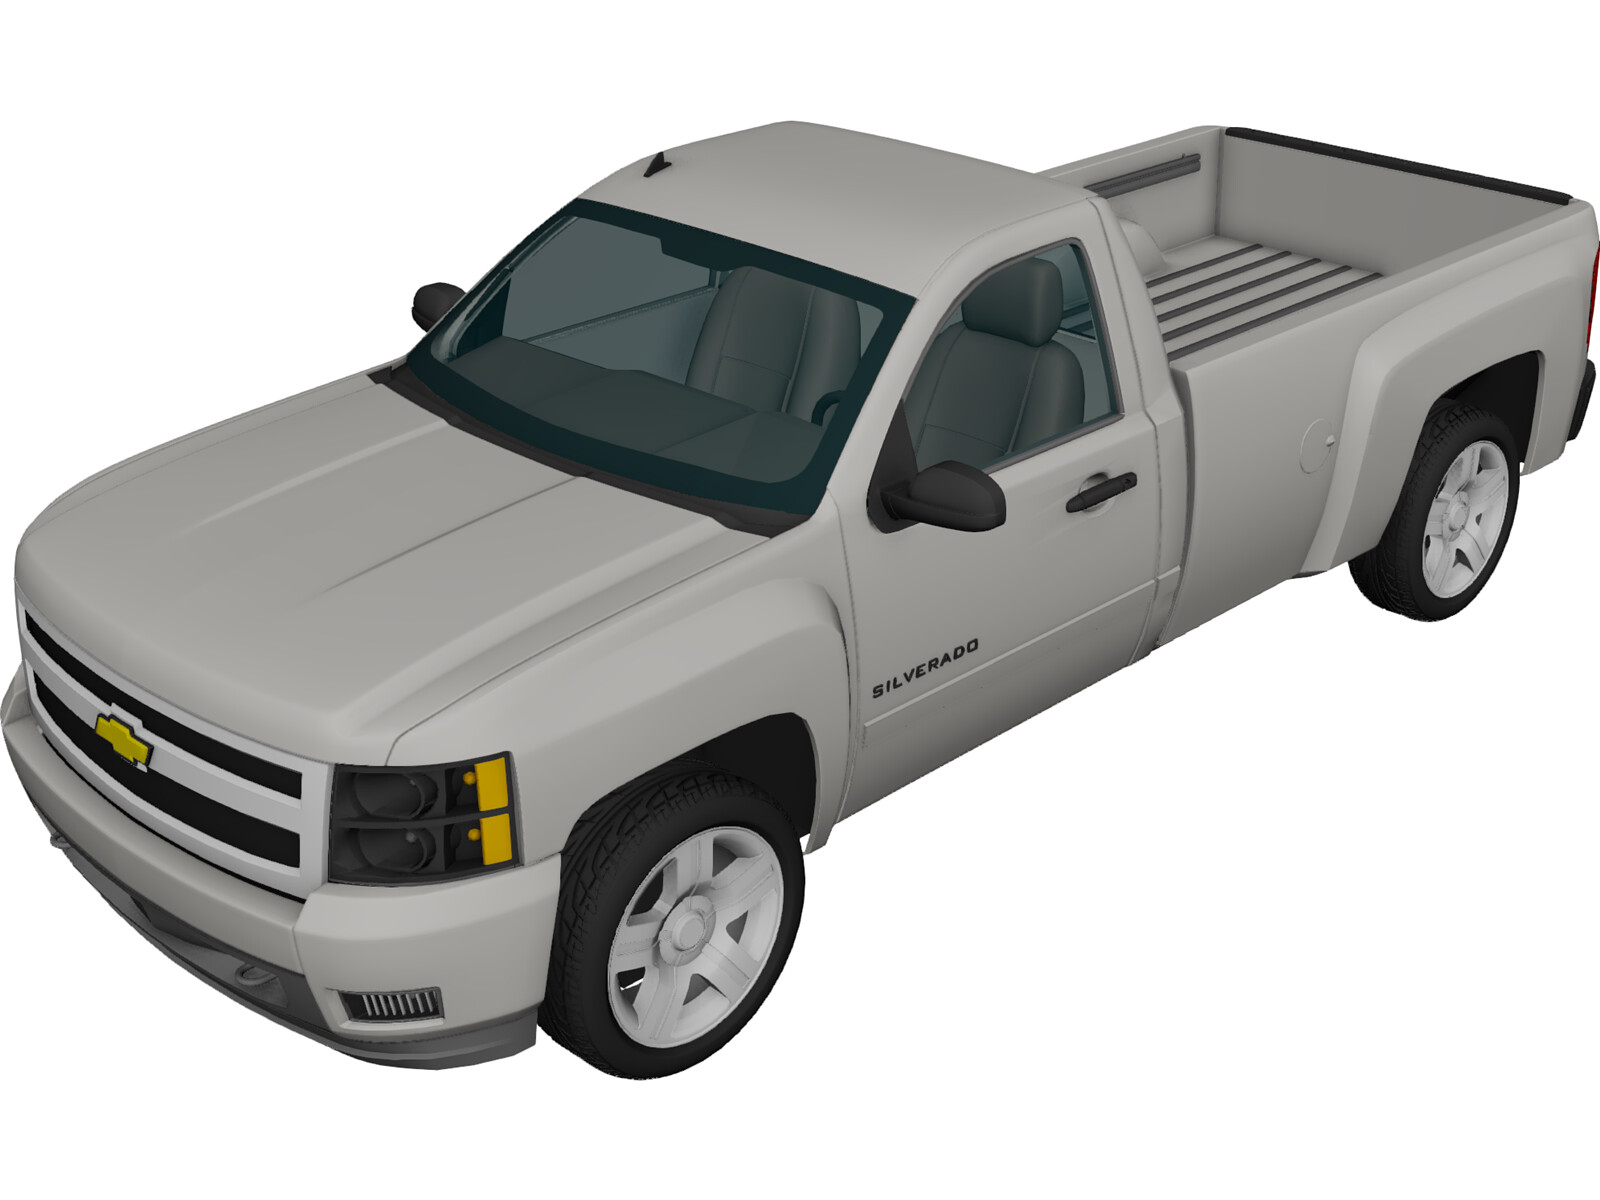 Chevrolet Silverado 2500HD Regular Cab LTZ (2009)